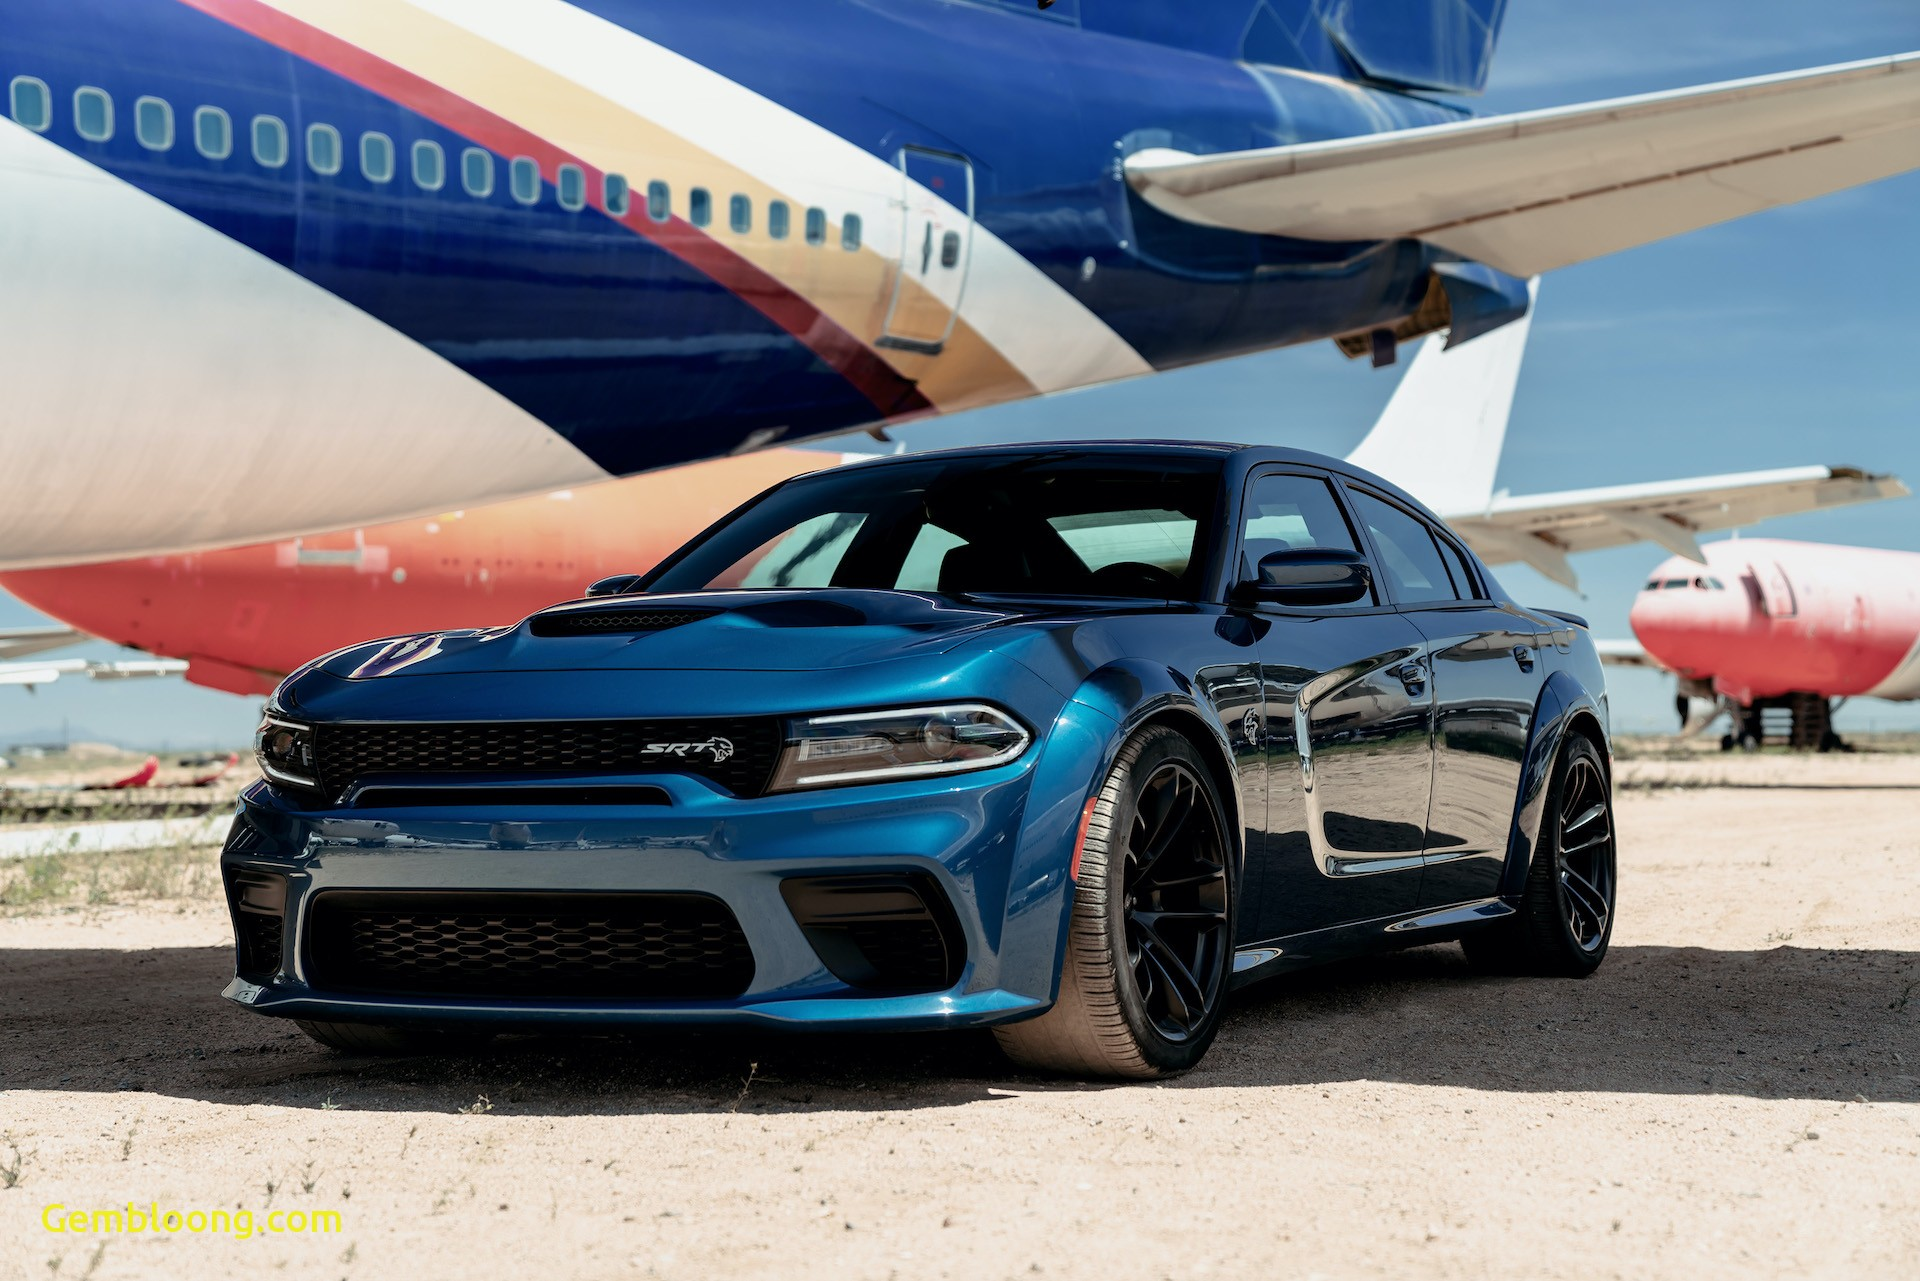 2010 Dodge Charger Best Of New and Used Dodge Charger Prices S Reviews Specs